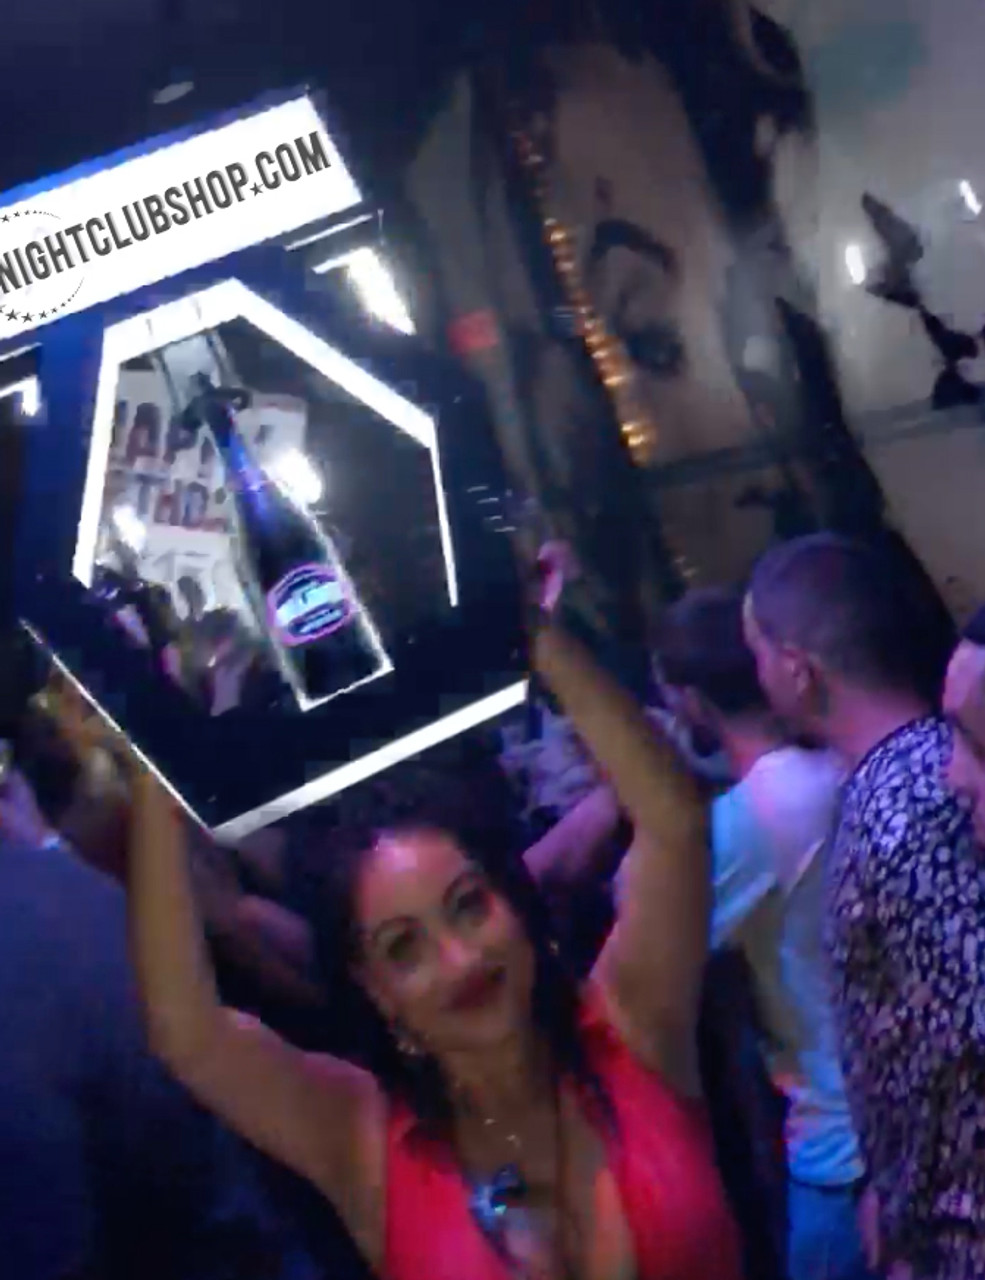 Nightclubshop_VIP_LED_HEX_BANNER_TOP_CHAMPAGNE_DELIVERY_TRAY_PRESENTER_BANNER TOP